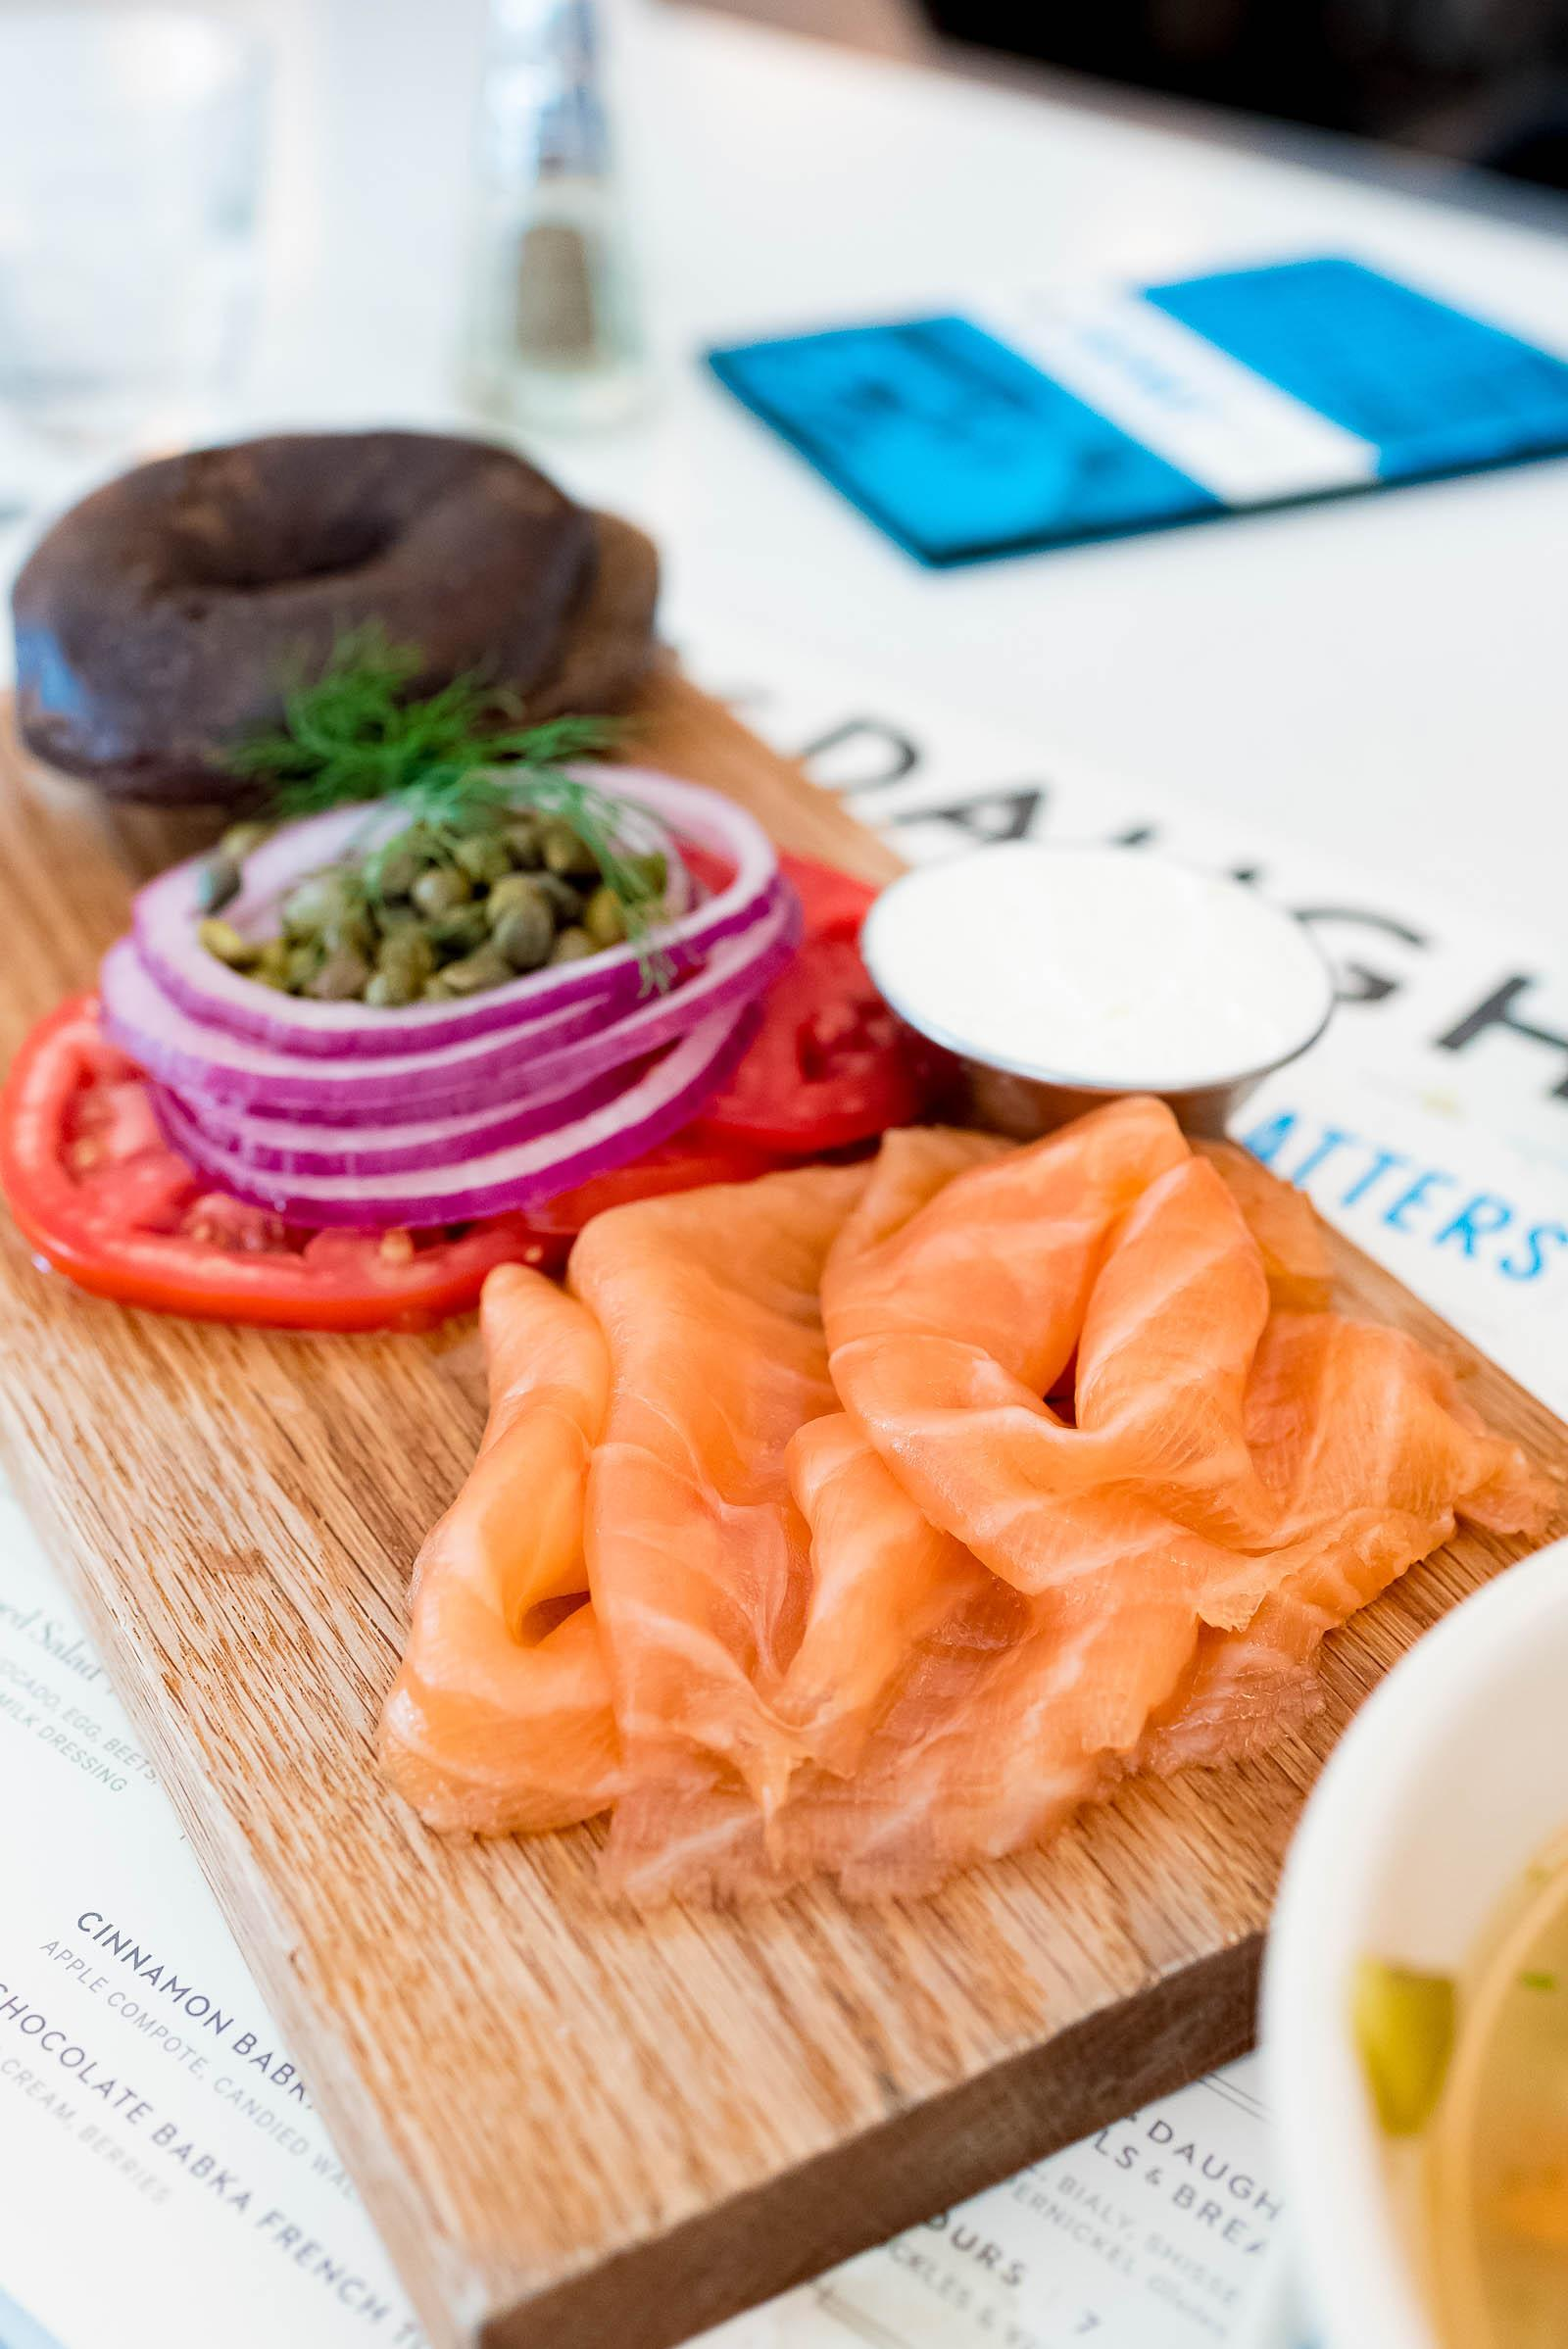 Russ & Daughters Cafe NYC